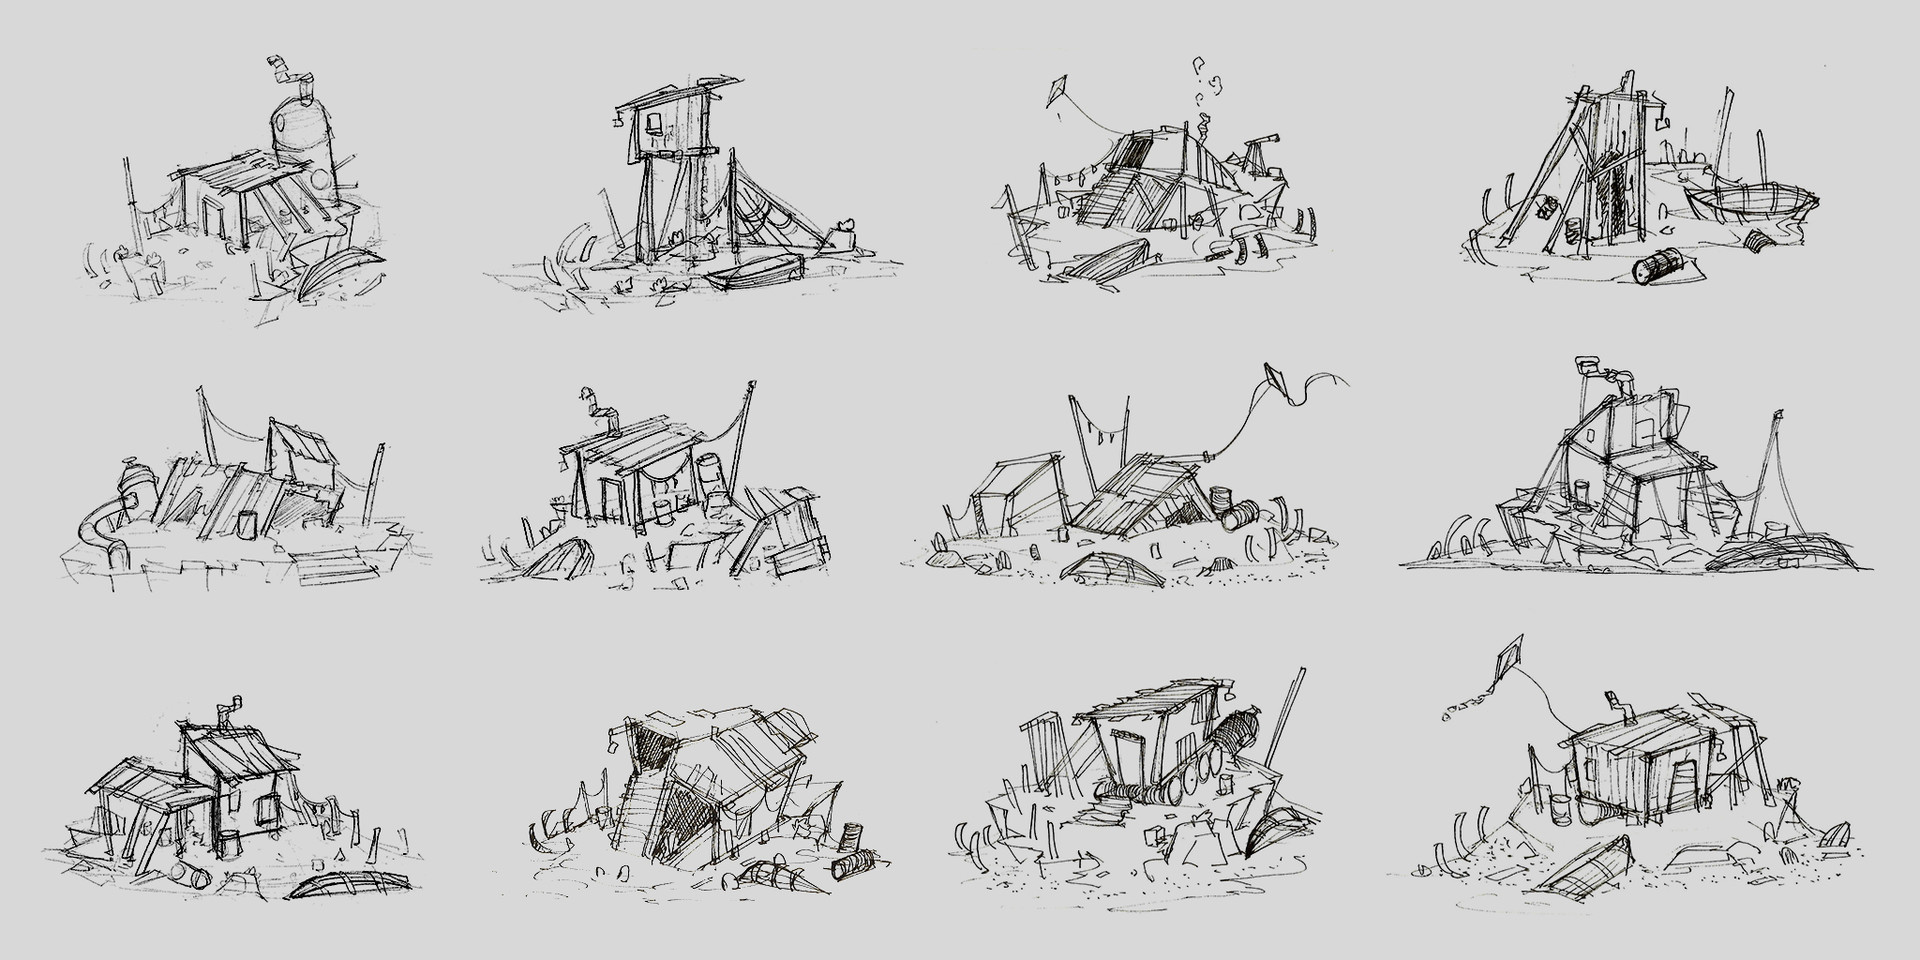 Thumbnails / Design phase